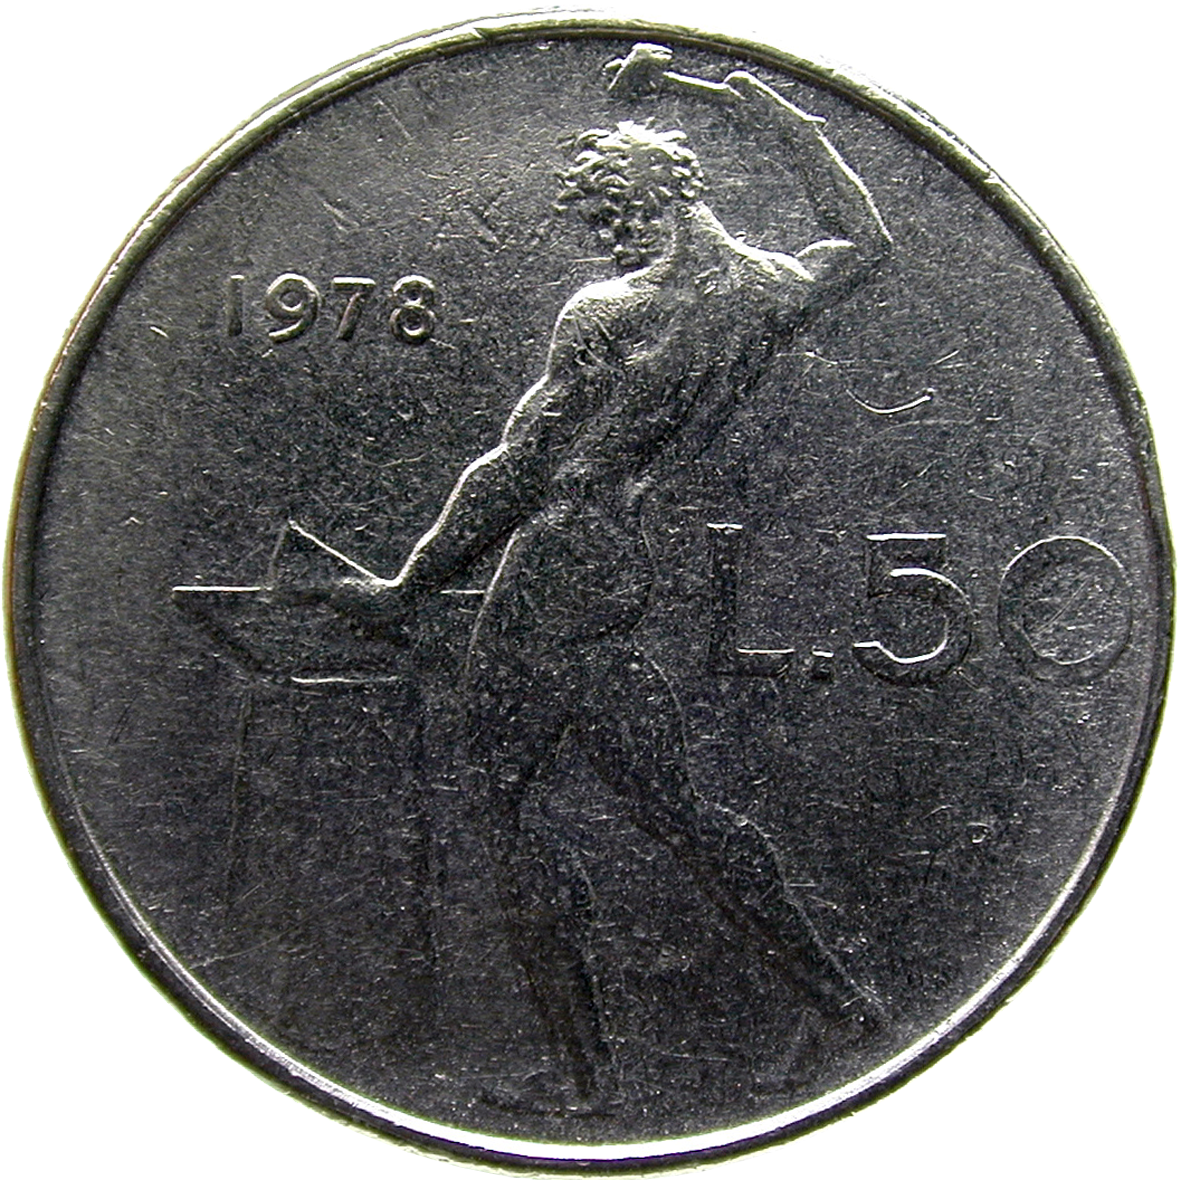 Republic of Italy, 50 Lire 1978 (reverse)